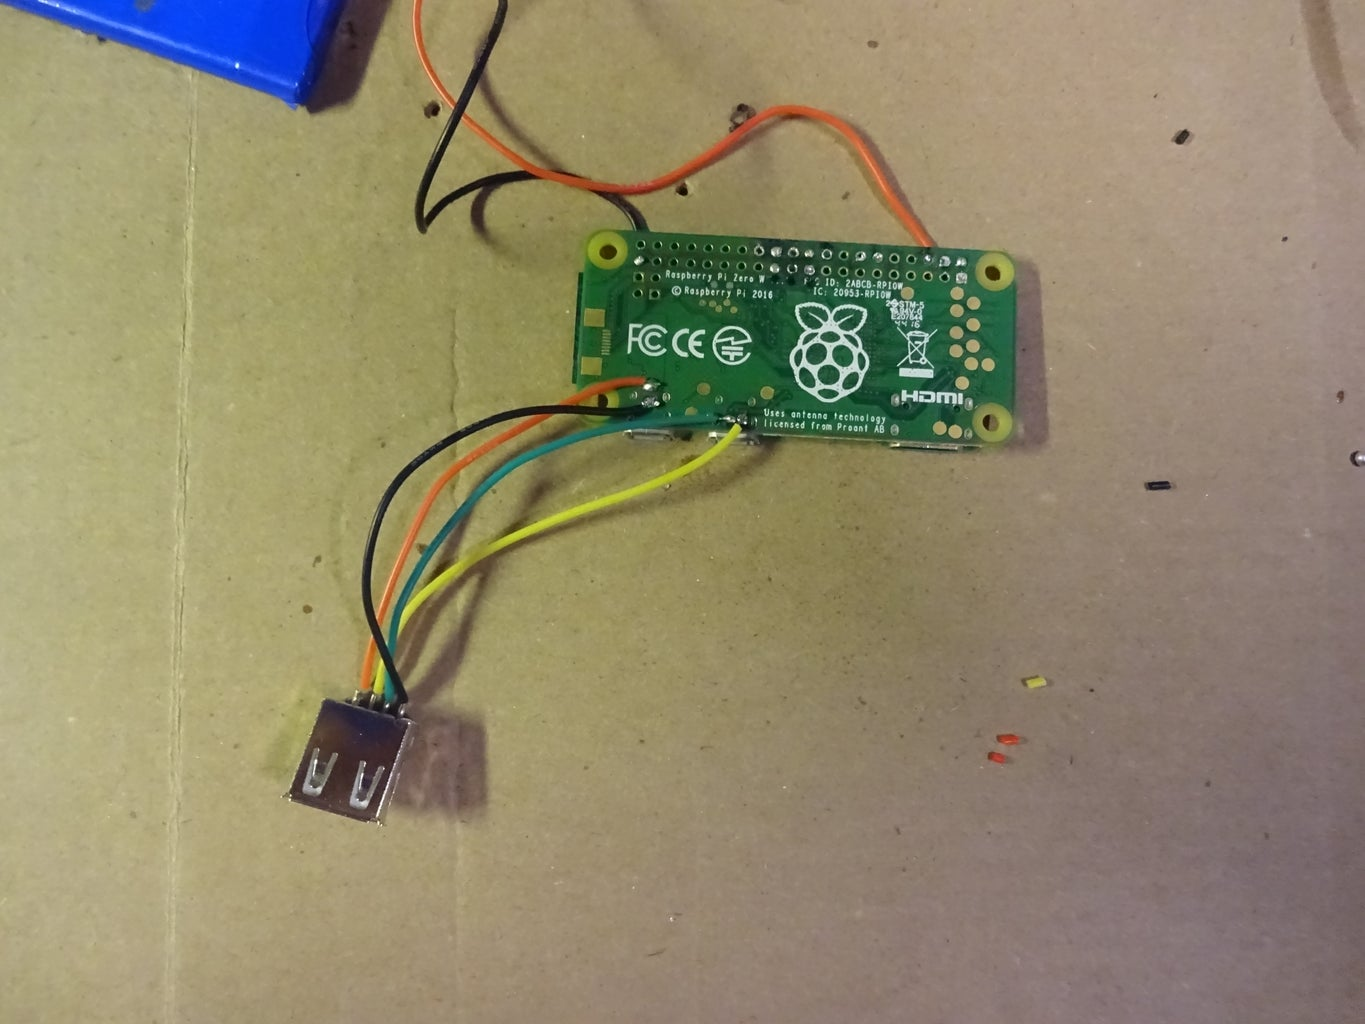 Solder the USB Jack to the Raspberry Pi